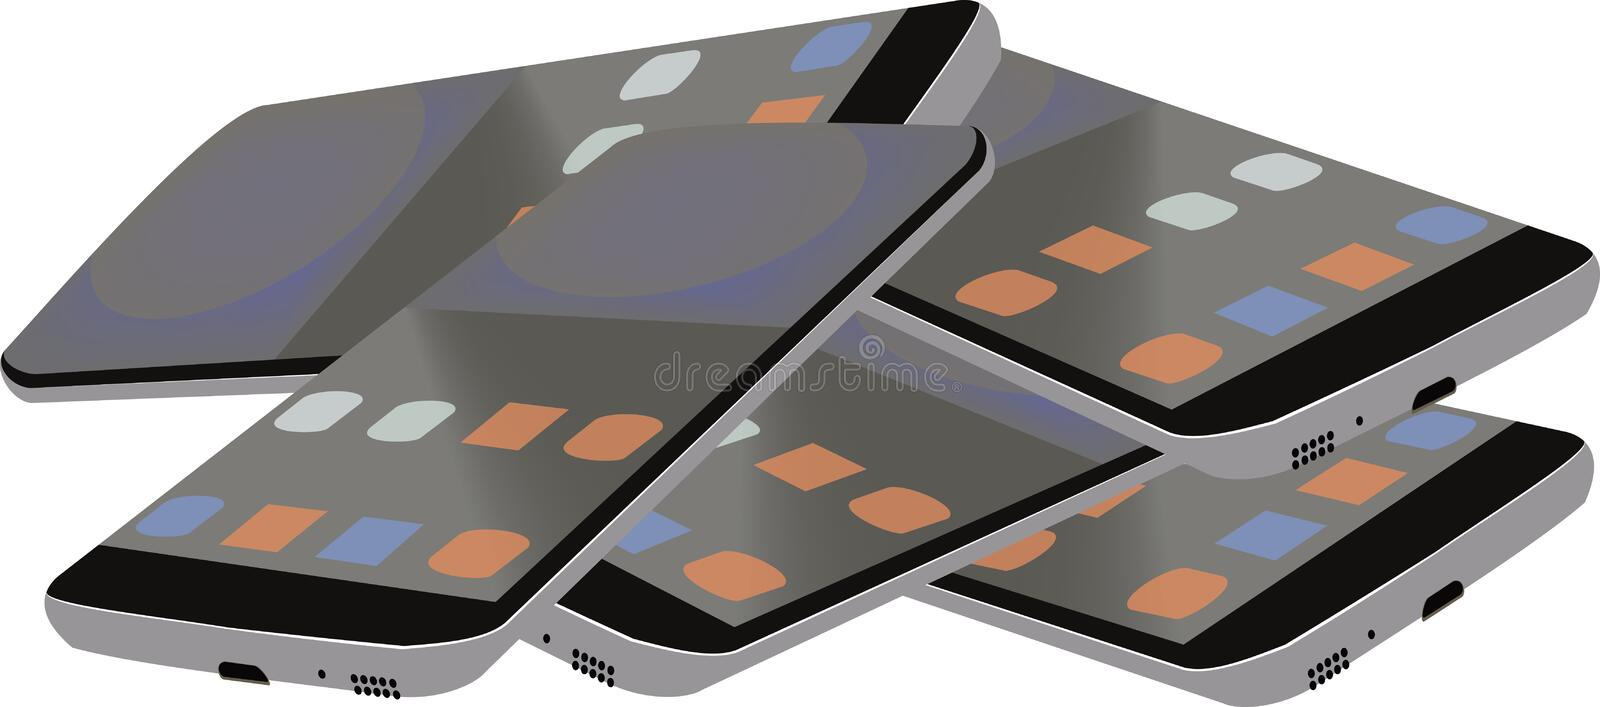 Group of discarded cell phones.  royalty free illustration